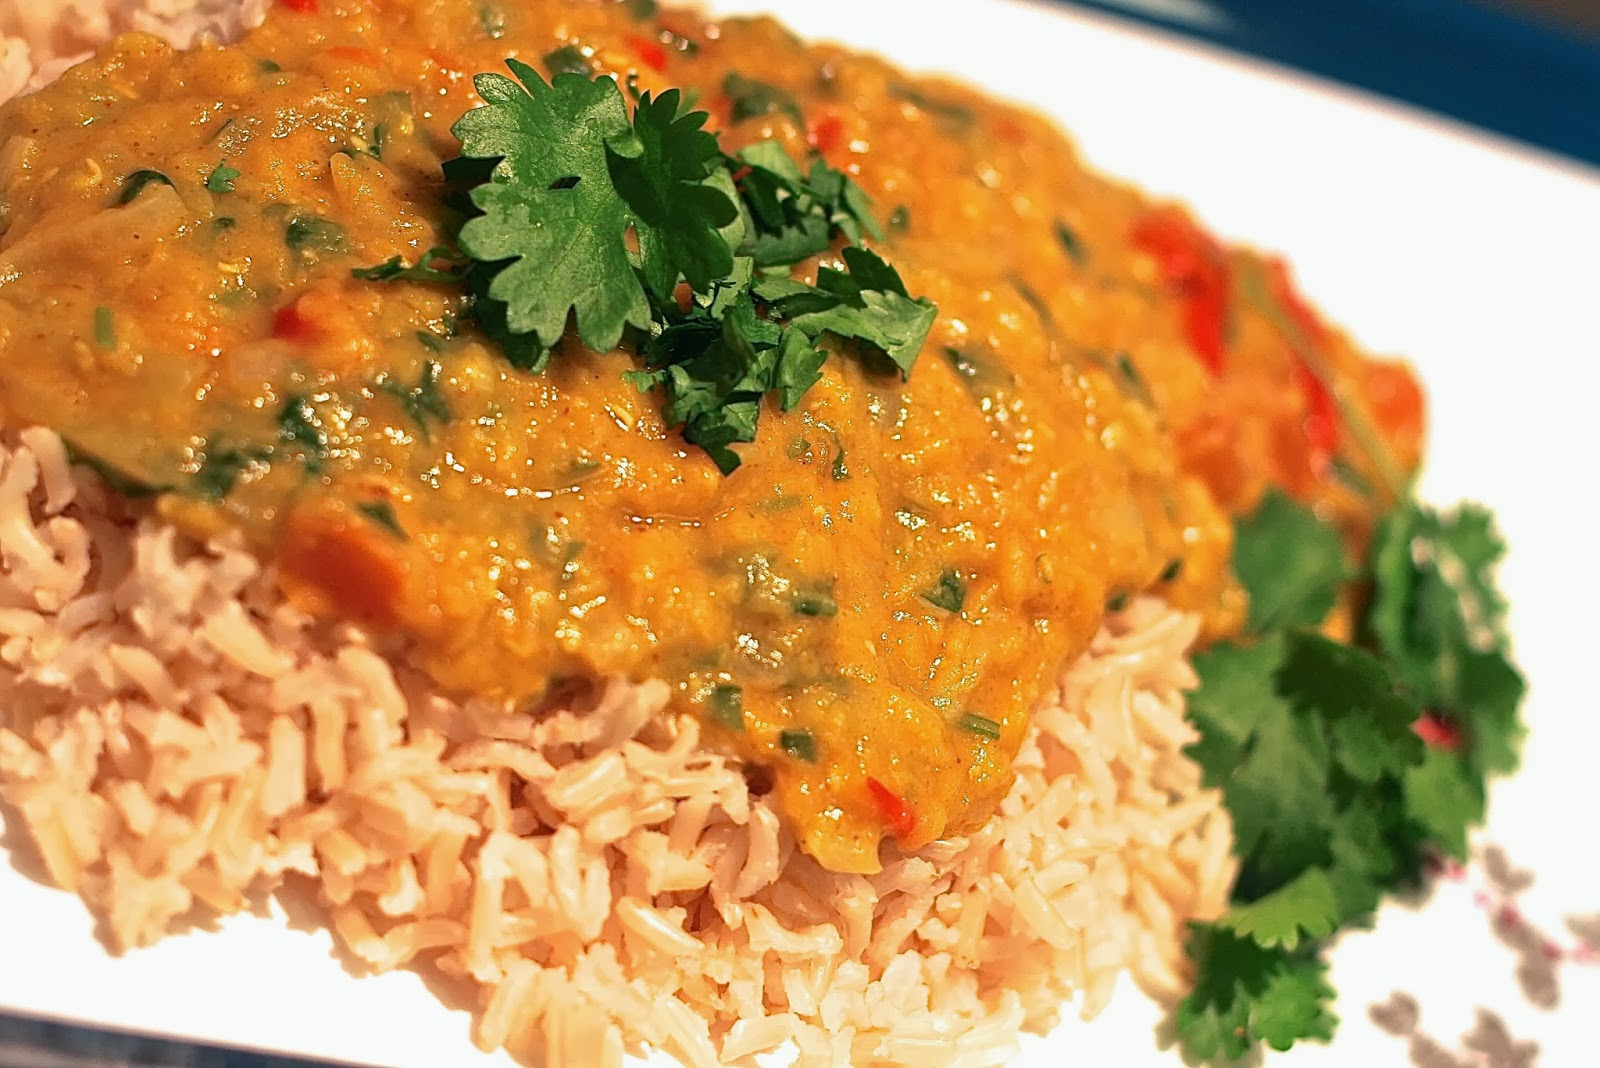 Hn issue 14 how to make bangladeshi red lentils food for the hungry otherwise known as moonsoor dahl in bangladesh this recipe is worth serving to almost any guest the fresh rich flavours of asia will tingle your forumfinder Gallery